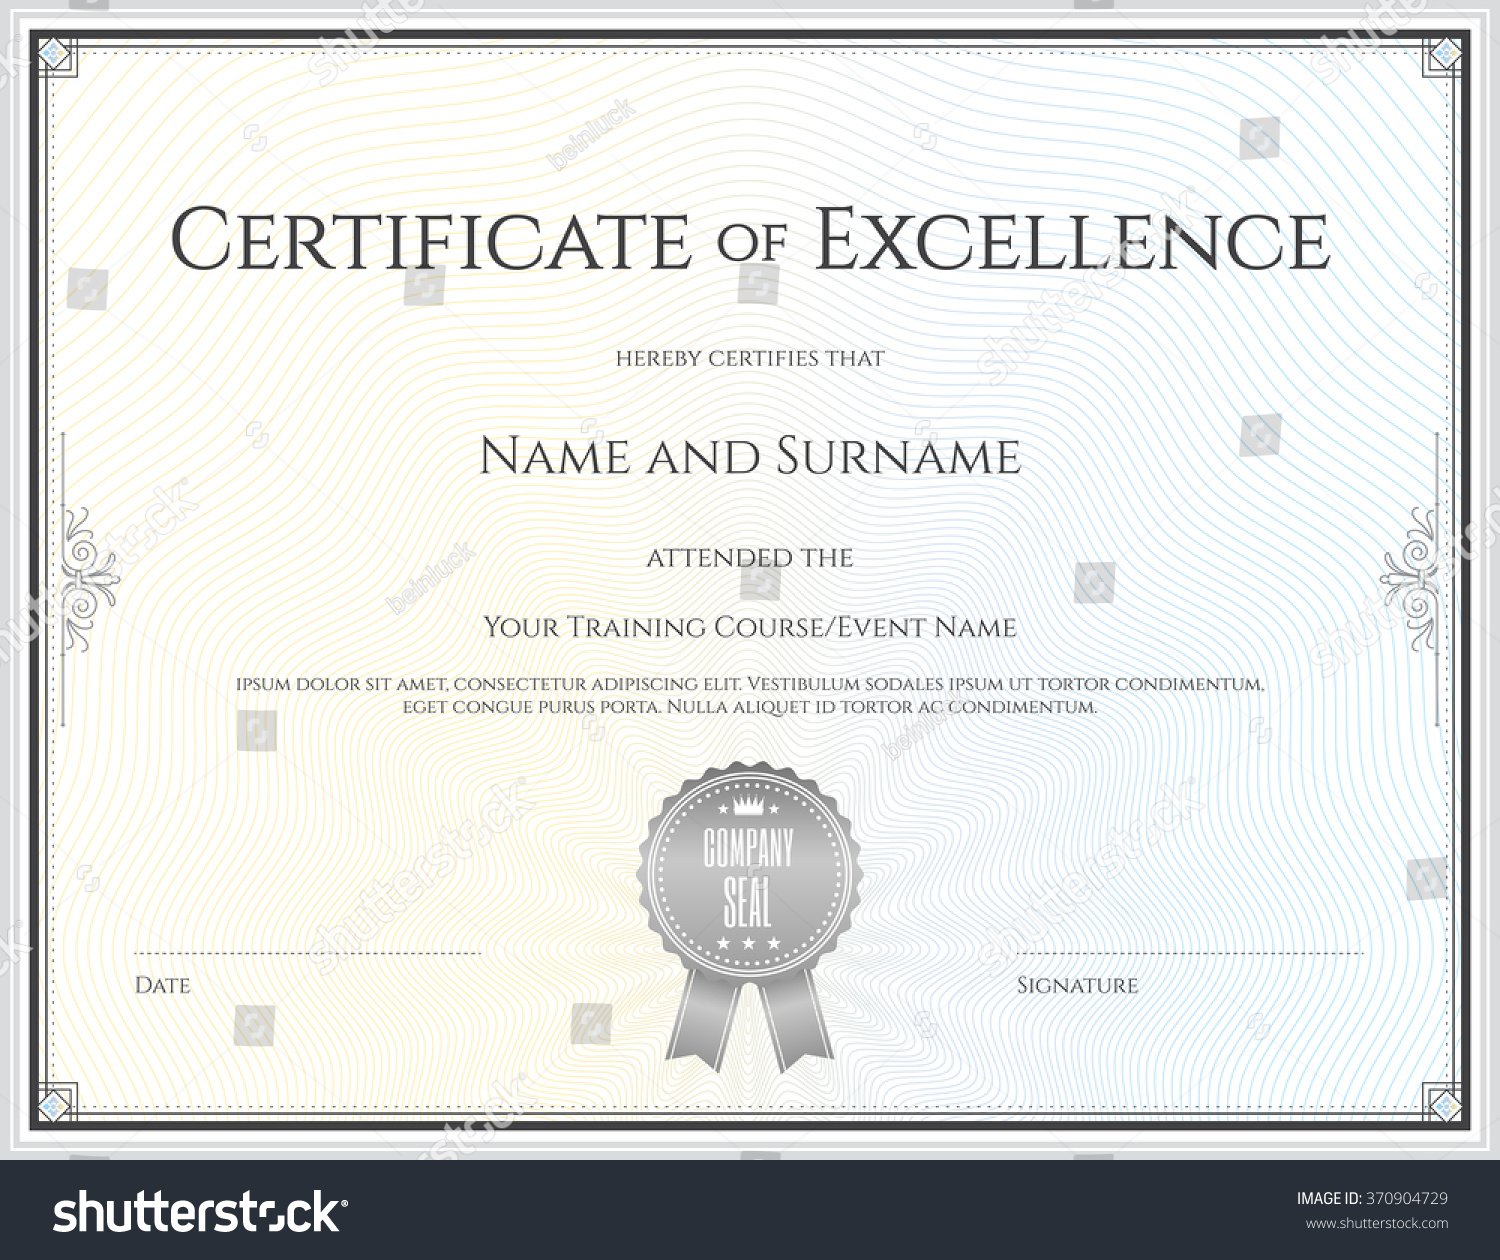 certificate excellence template vector achievement graduation stock